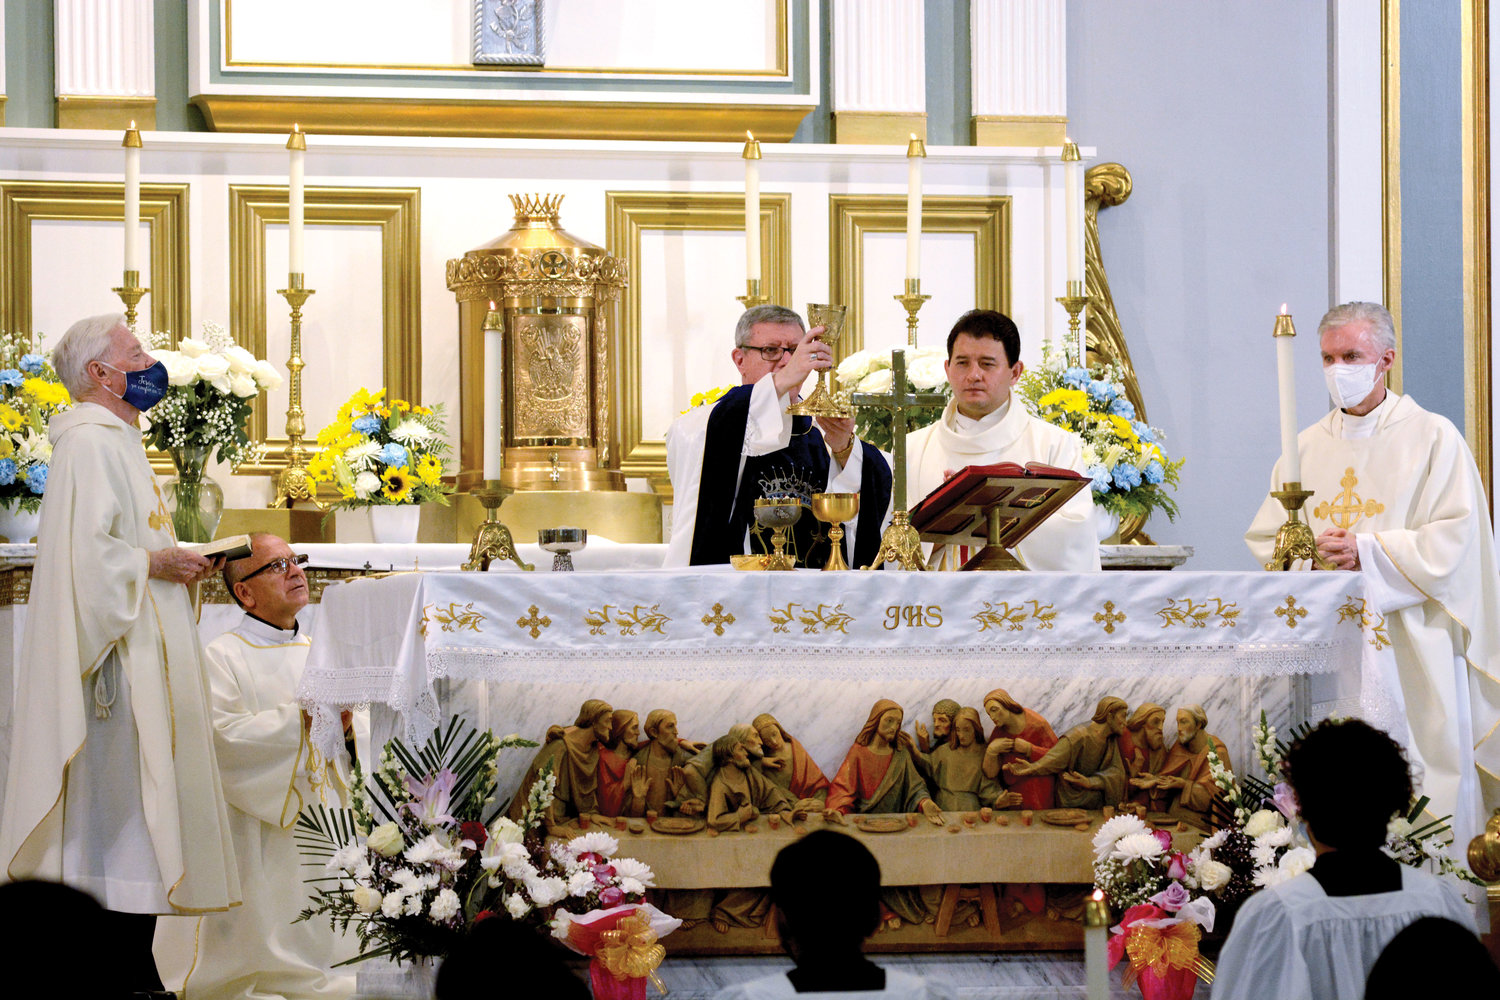 SACRED MOMENT—Auxiliary Bishop Gerardo J. Colacicco lifts the chalice during the consecration at the Vigil Mass for the feast of the Assumption of the Blessed Virgin Mary Aug. 14 at Assumption parish in Peekskill. On the altar with the bishop are, from left,